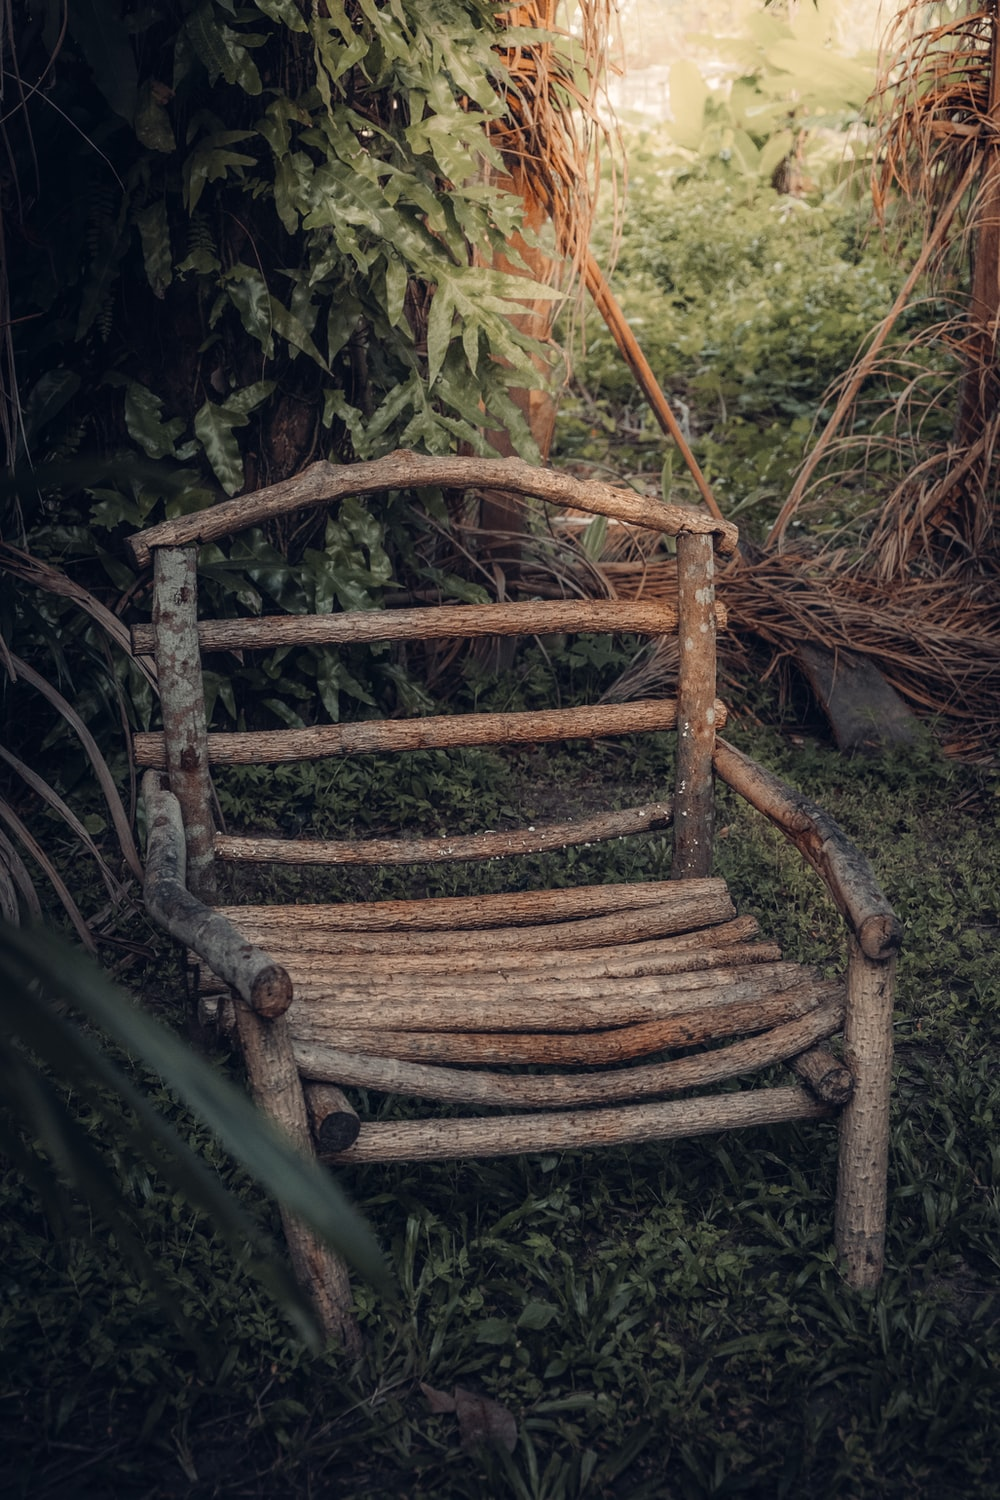 brown wooden chair on forest during daytime